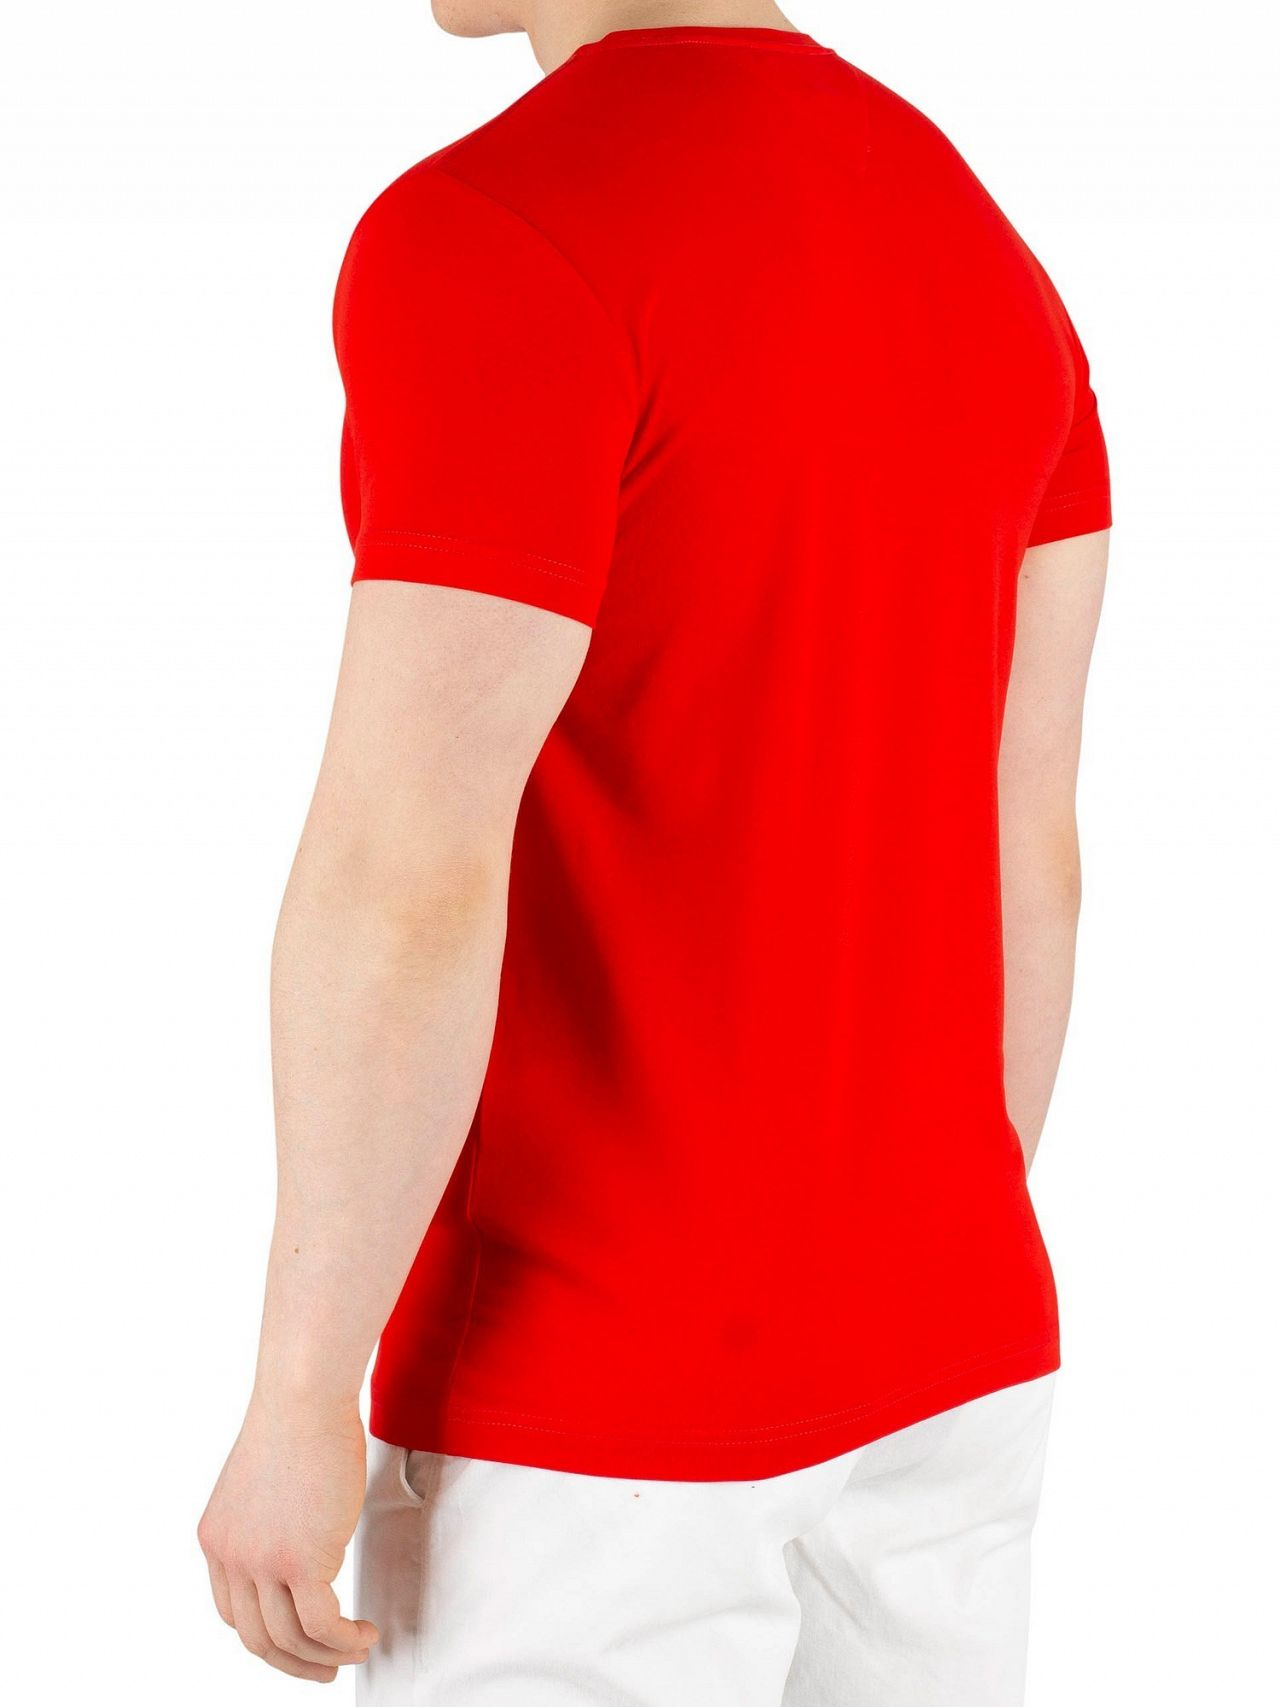 a7507293 Tommy Hilfiger Fiery Red Stretch Slim Fit T-Shirt | Standout